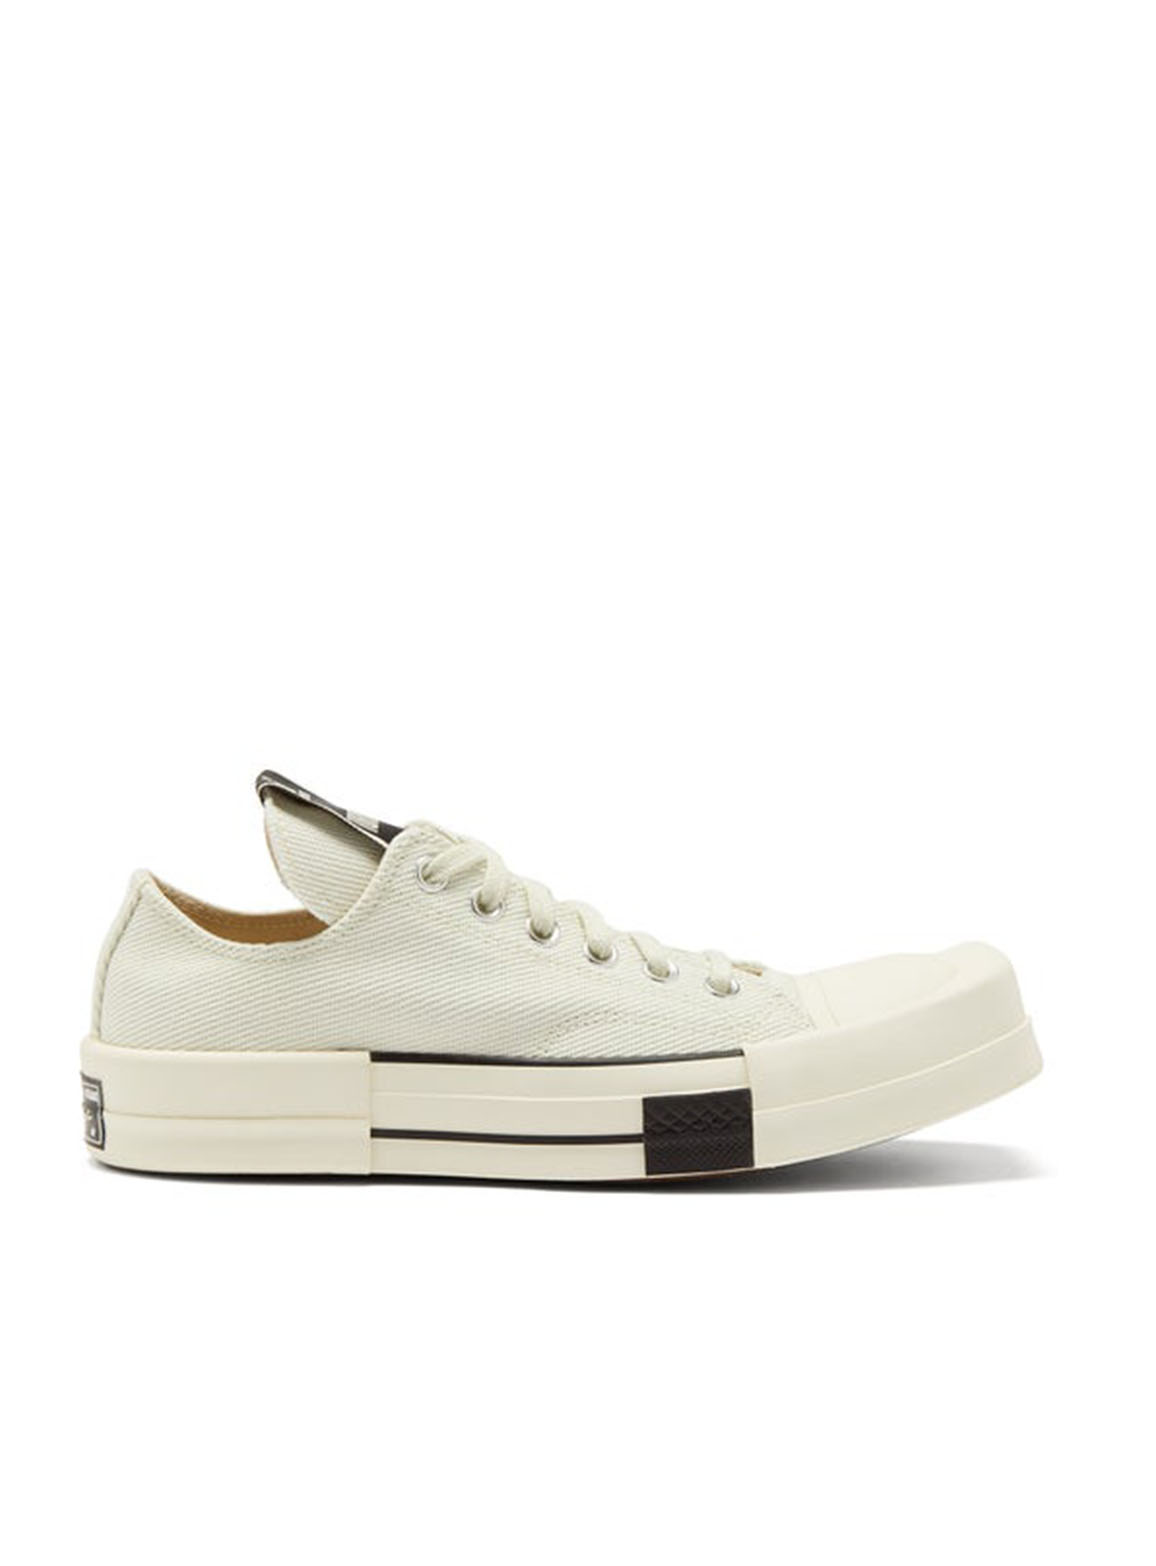 X Converse TURBODRK Chuck 70 canvas trainers